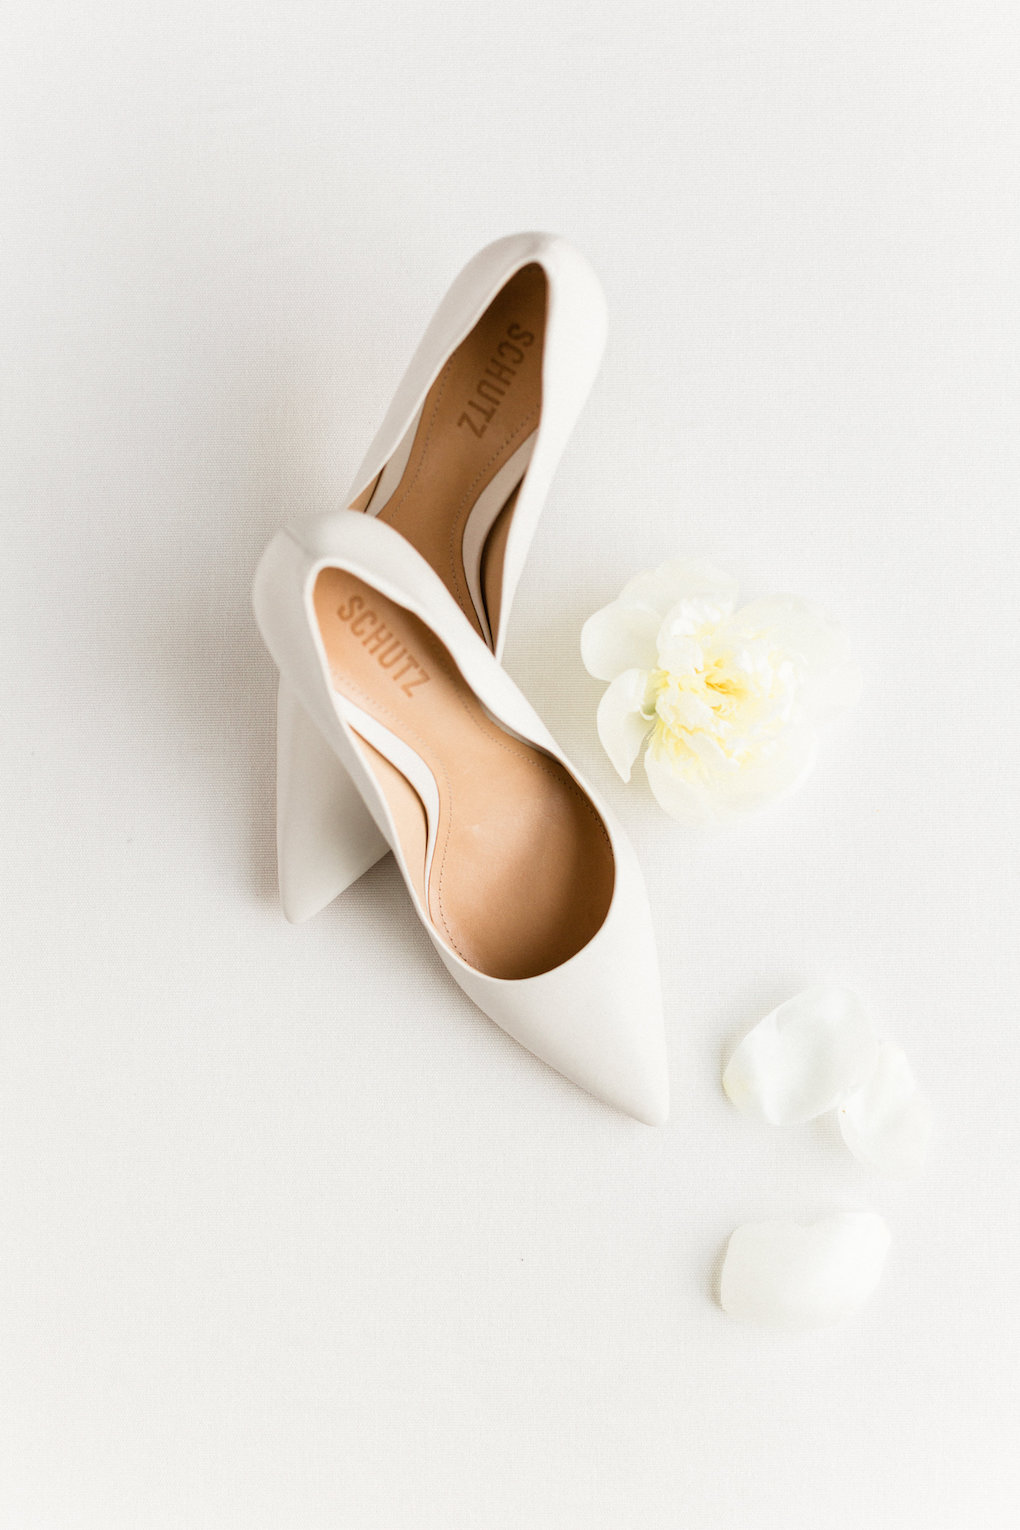 White wedding shoes for chic wedding in Buffalo, NY planned by Exhale Events. Find more timeless wedding inspiration at exhale-events.com!